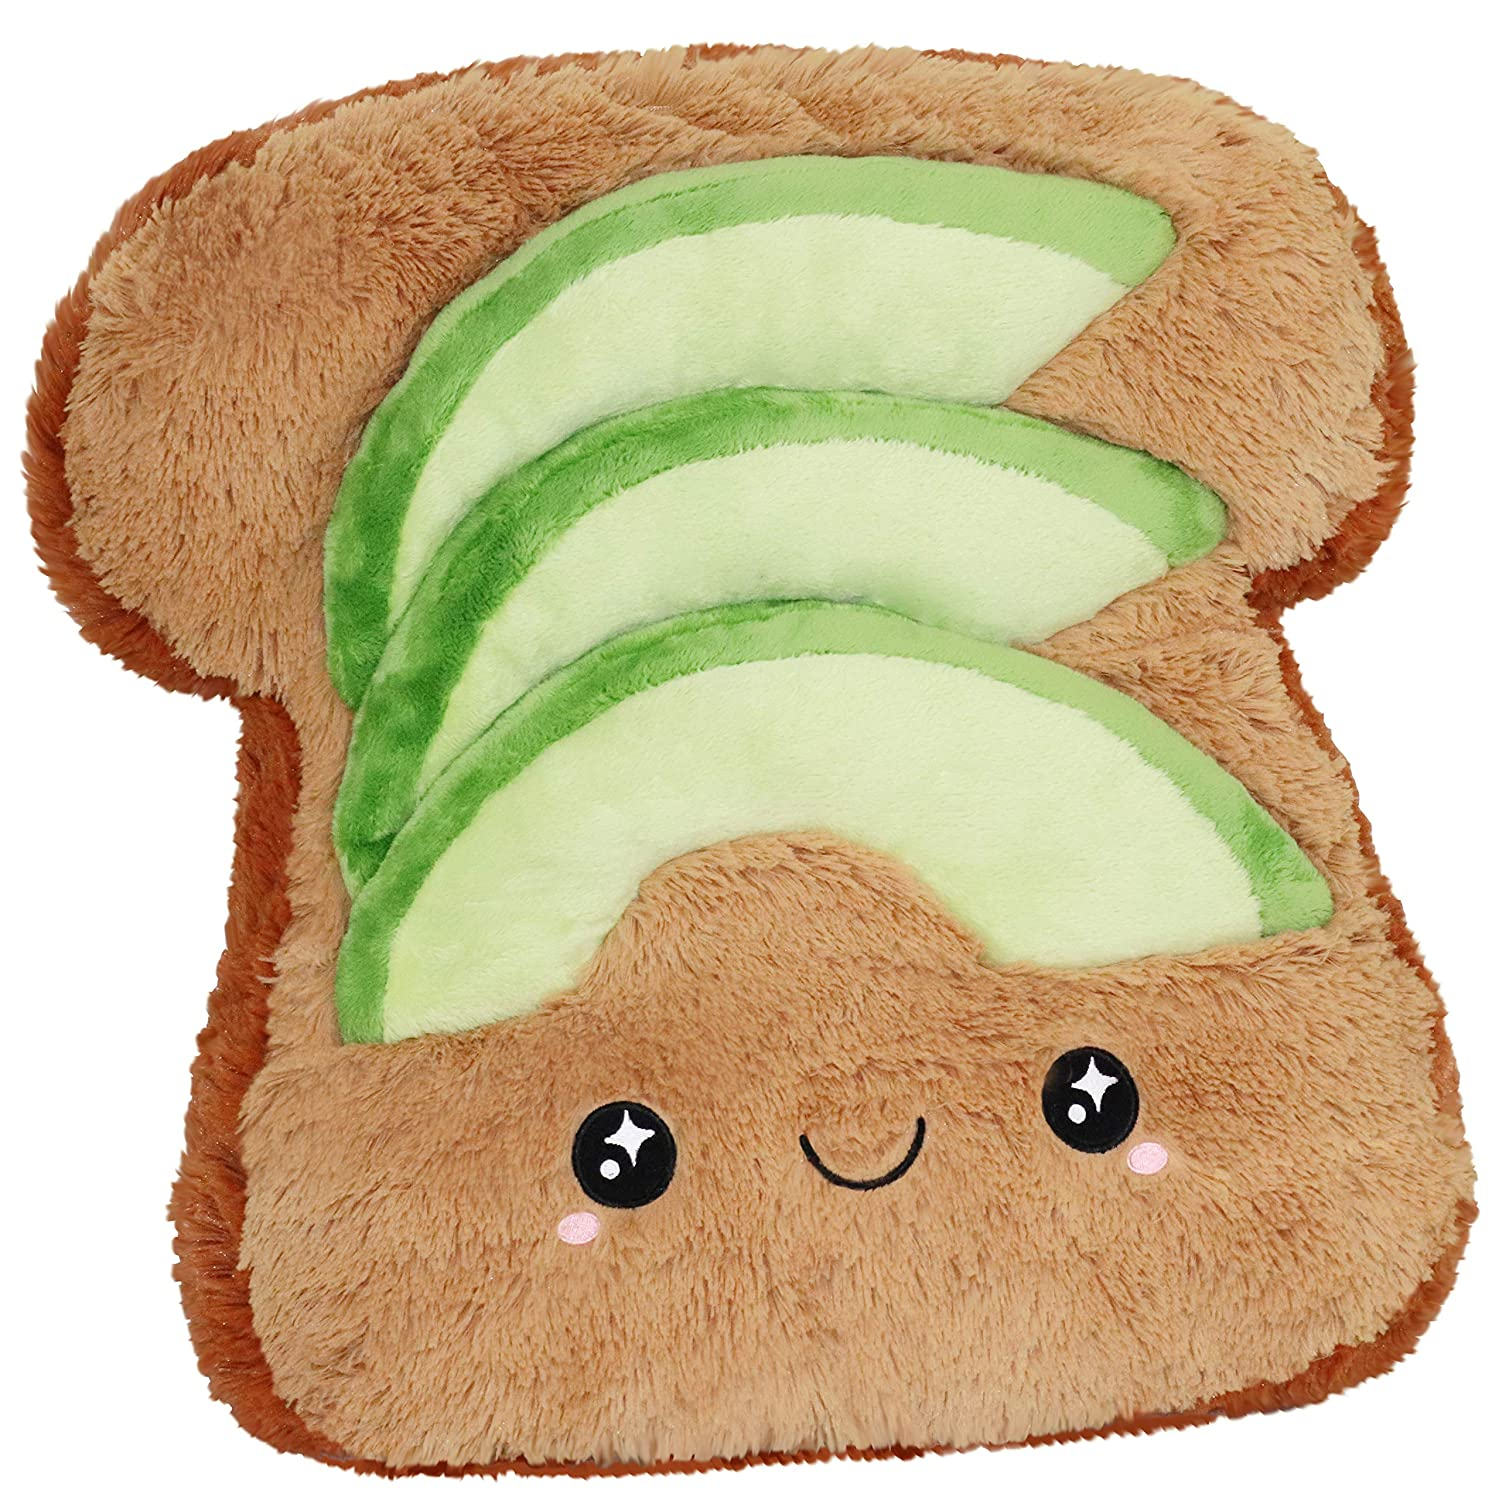 Squishable / Comfort Food Avocado Toast - 15""